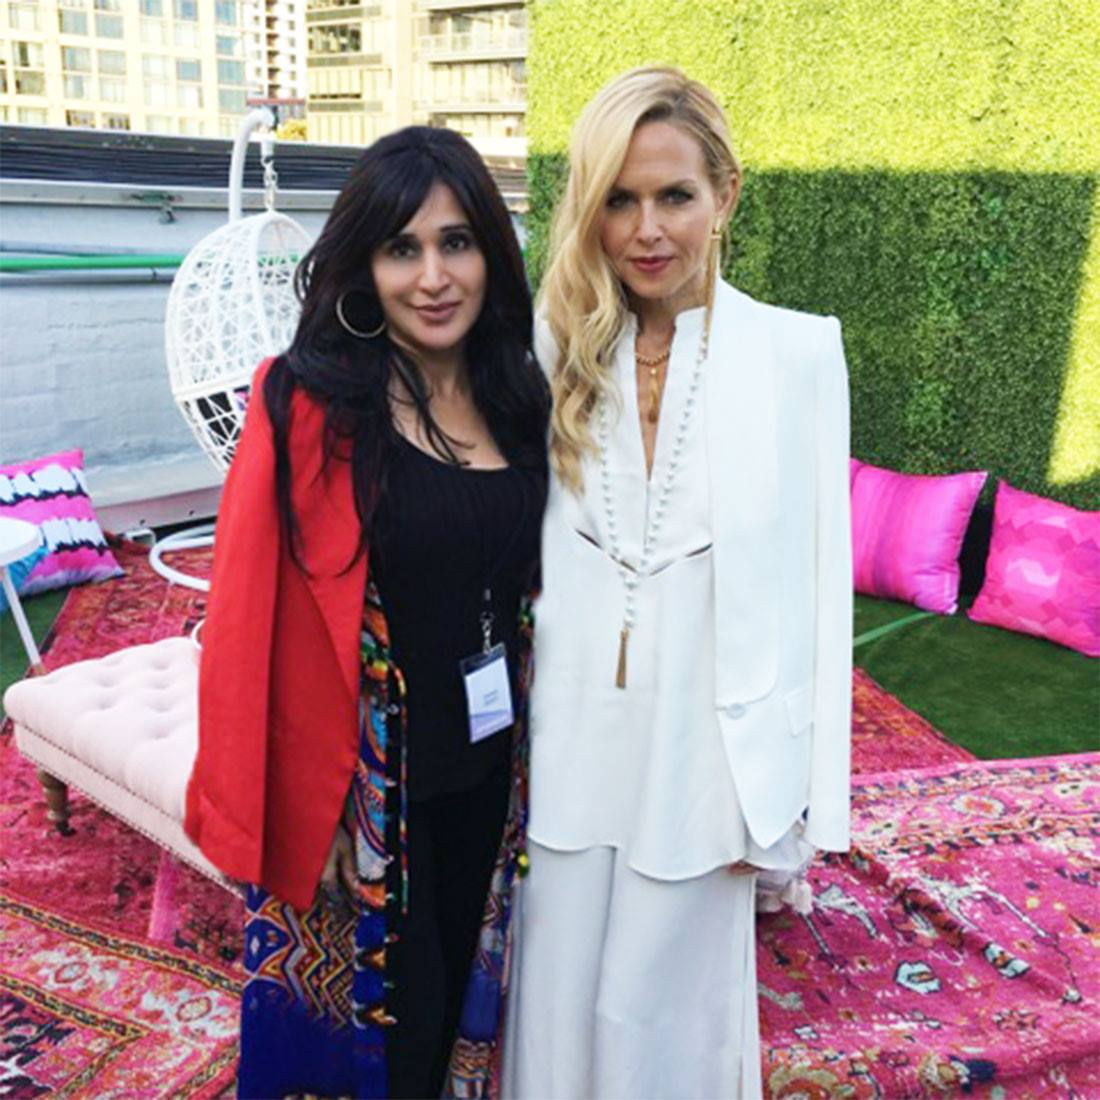 rachel-zoe-with-shahida-parides-at-create-and-cultivate